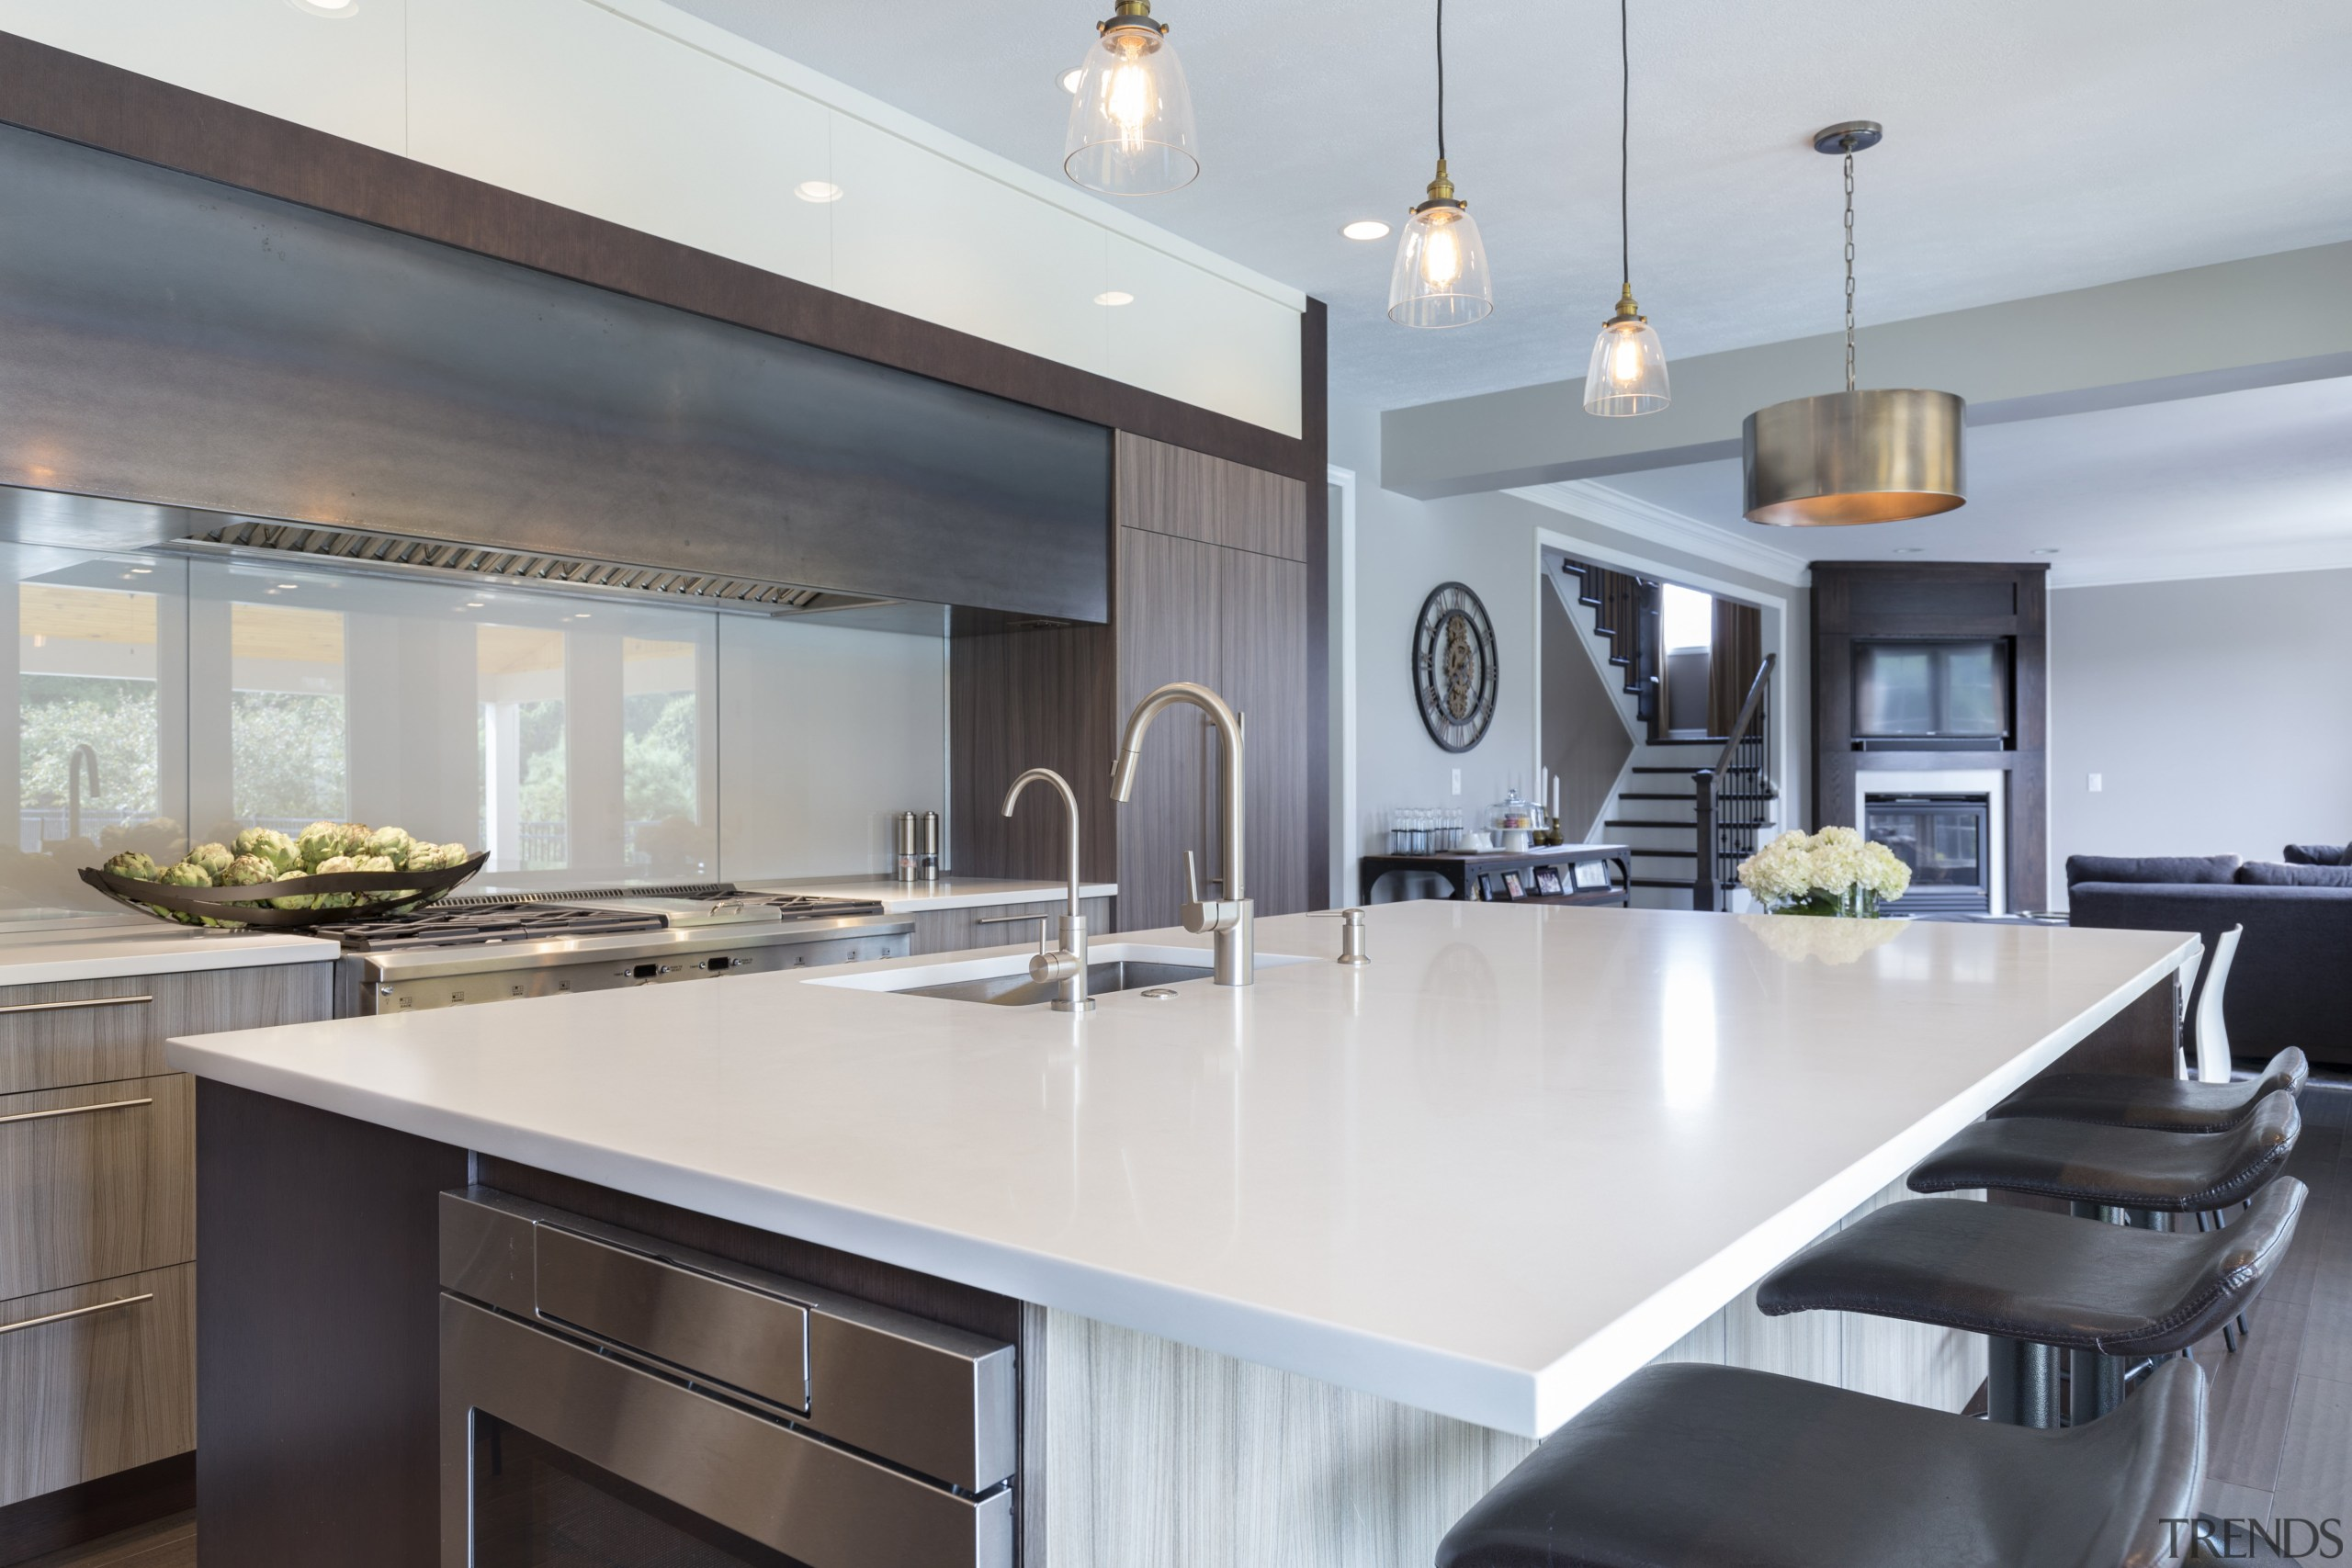 The two laminate finishes  a dark wood ceiling, countertop, cuisine classique, interior design, kitchen, real estate, gray